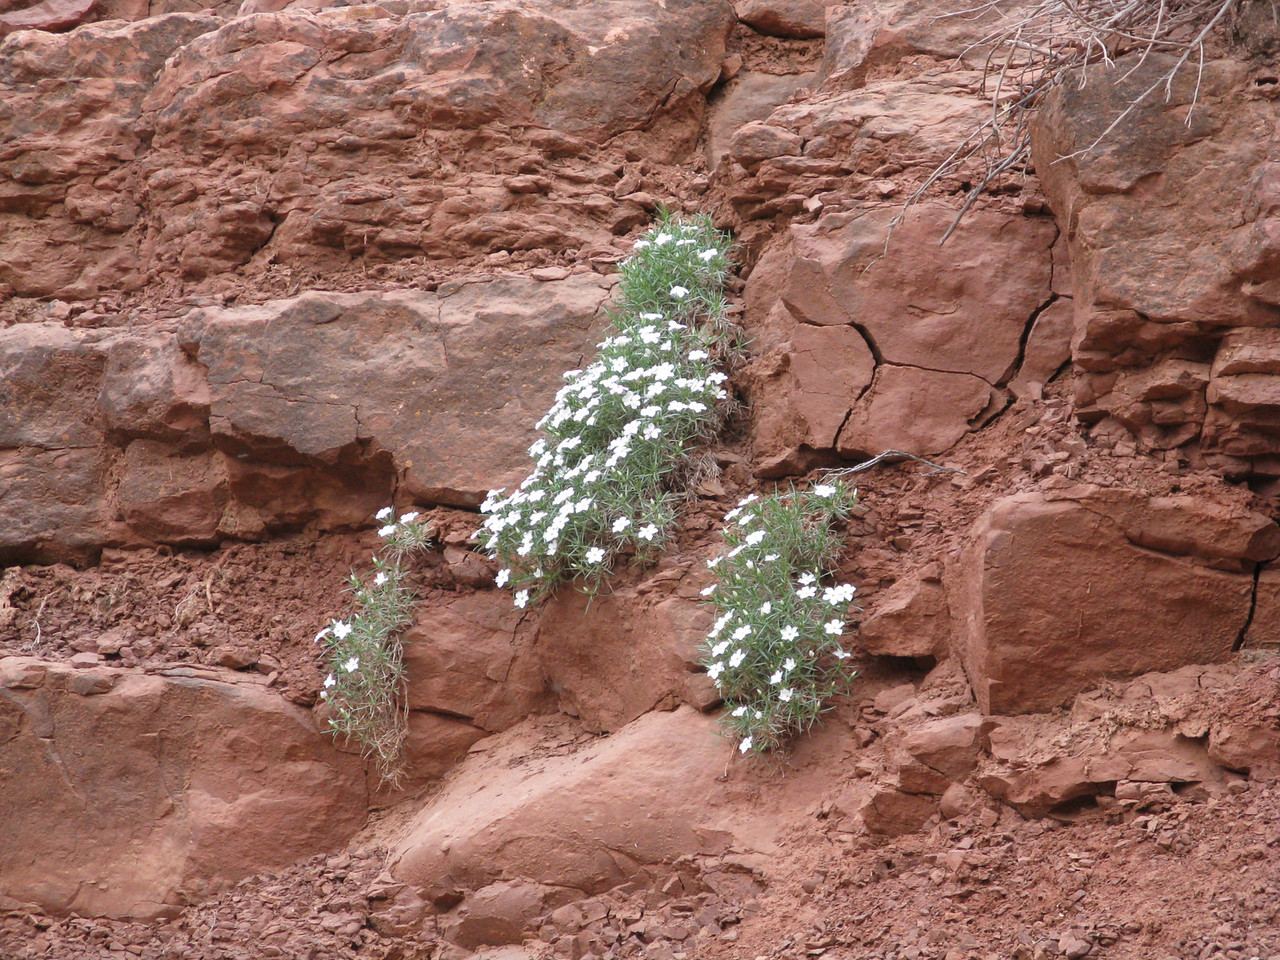 Wildflowers blossom in every type of rock layer.